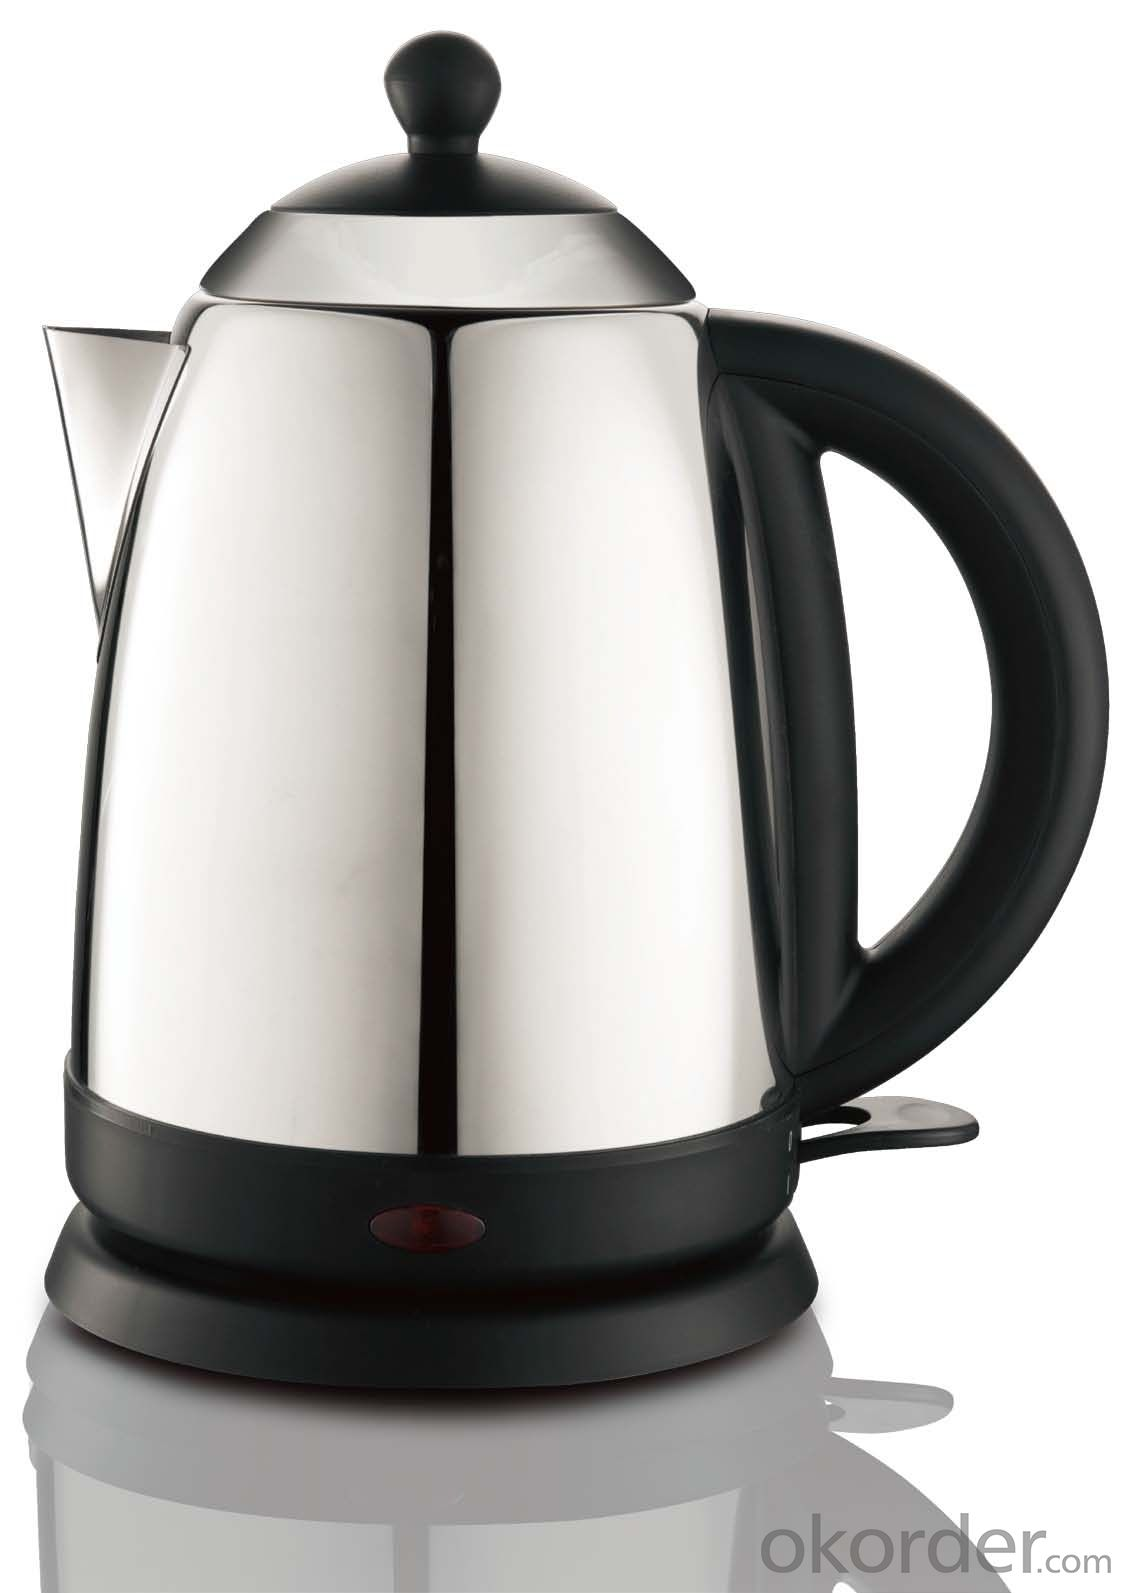 1.7 Litre Stainless Steel Electric Kettle